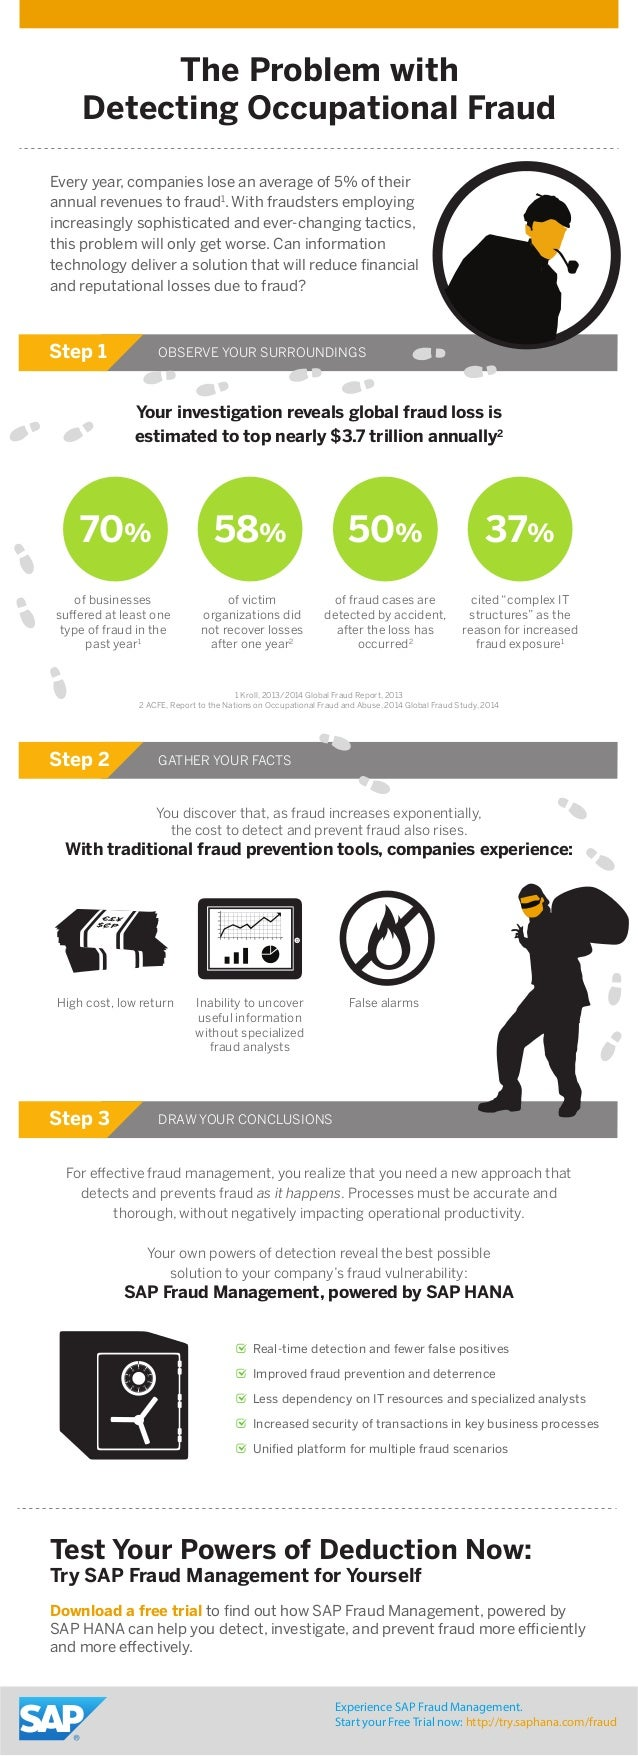 Experience SAP Fraud Management. Start your Free Trial now: http://try.saphana.com/fraud Test Your Powers of Deduction Now...